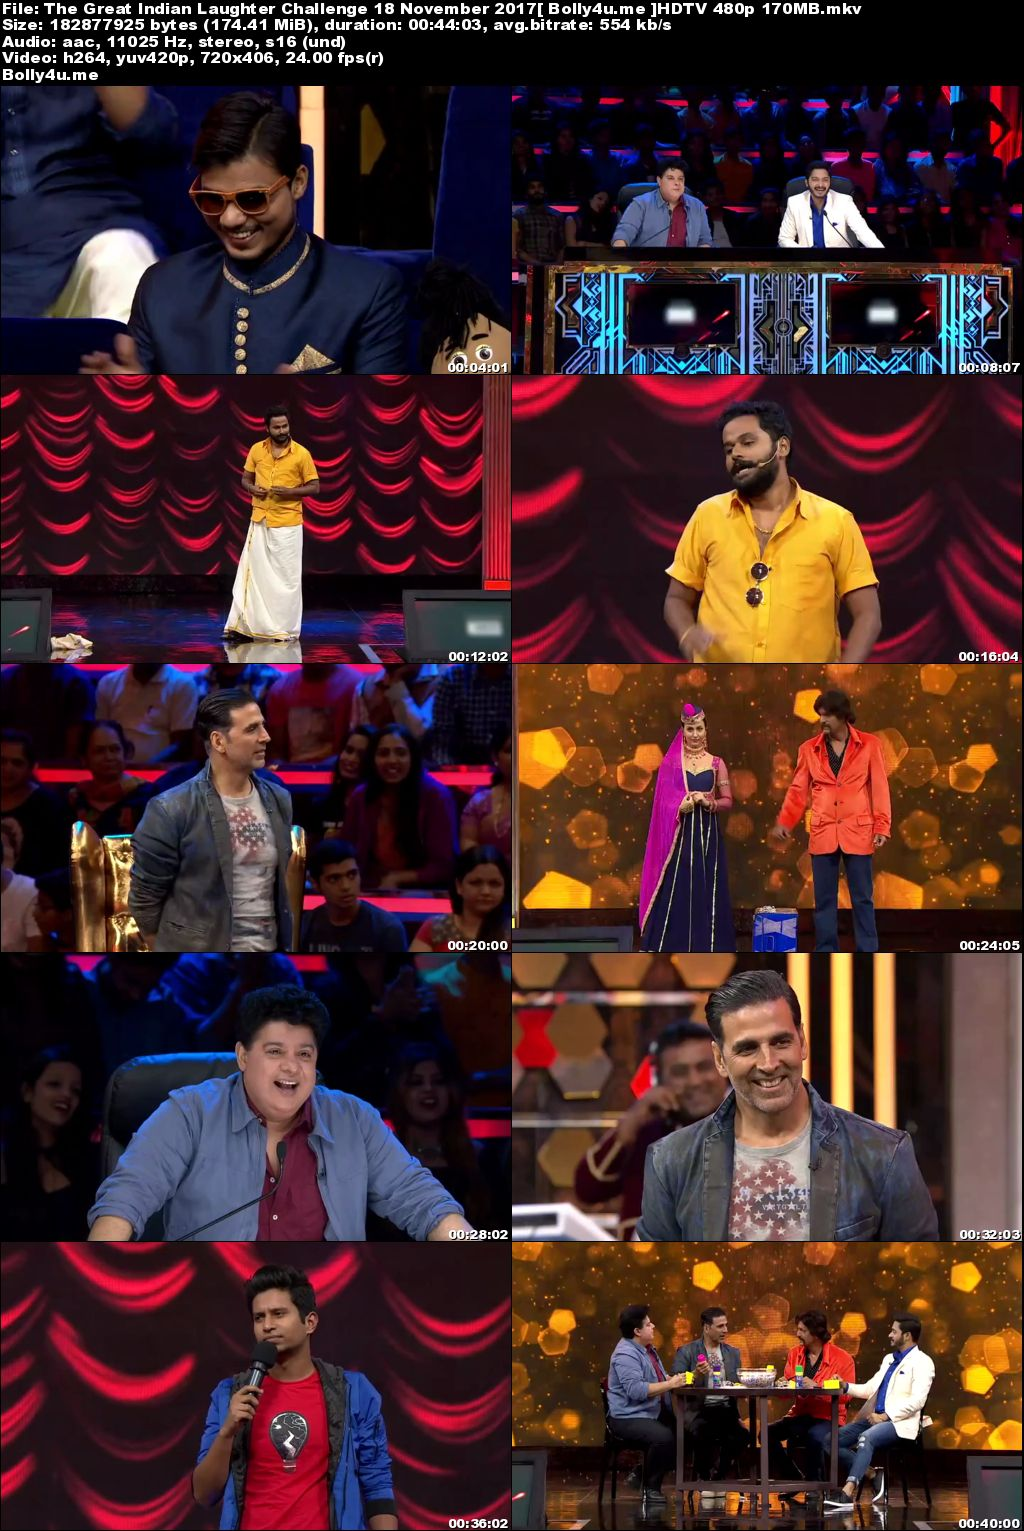 The Great Indian Laughter Challenge HDTV 480p 170MB 18 November 2017 Download